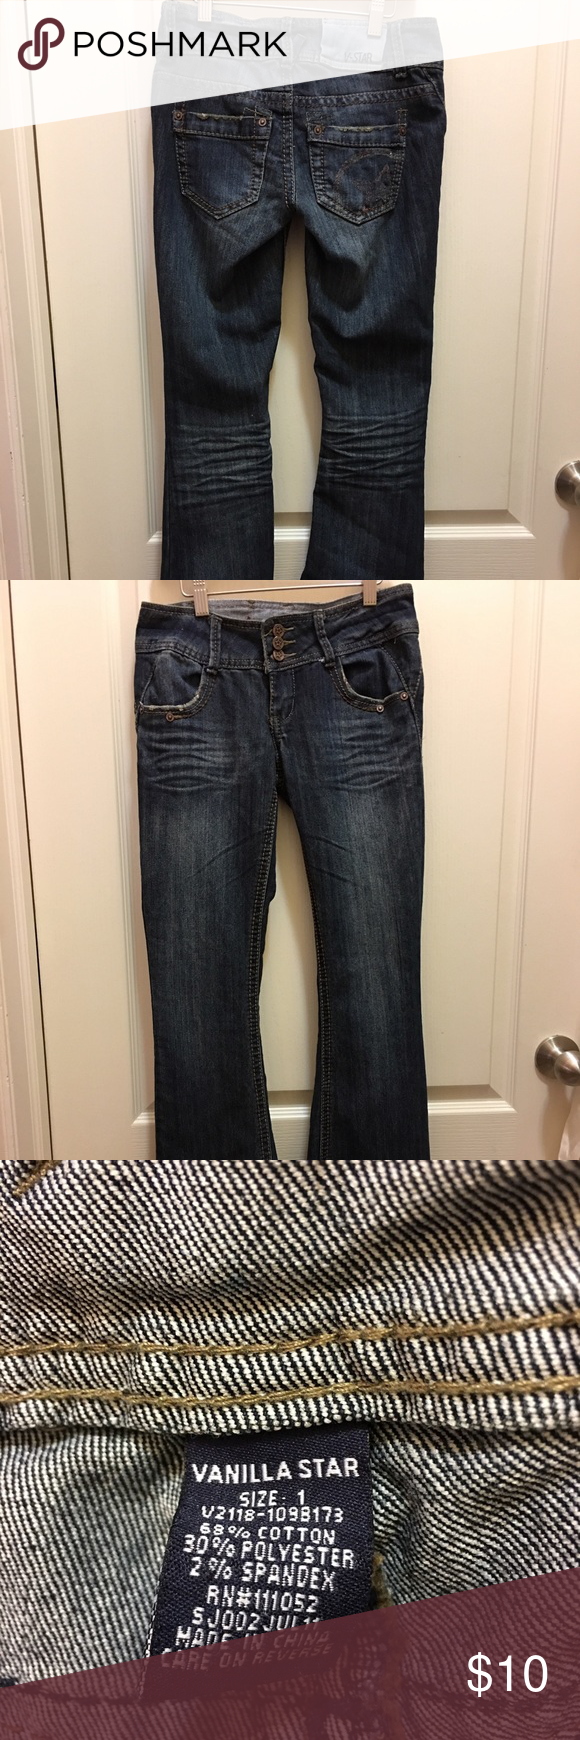 "Juniors Size 1 Vanilla Star Flare leg jeans Vanilla star jeans in excellent condition.  Size 1 31"" inseam. Vanilla Star Jeans Flare & Wide Leg"